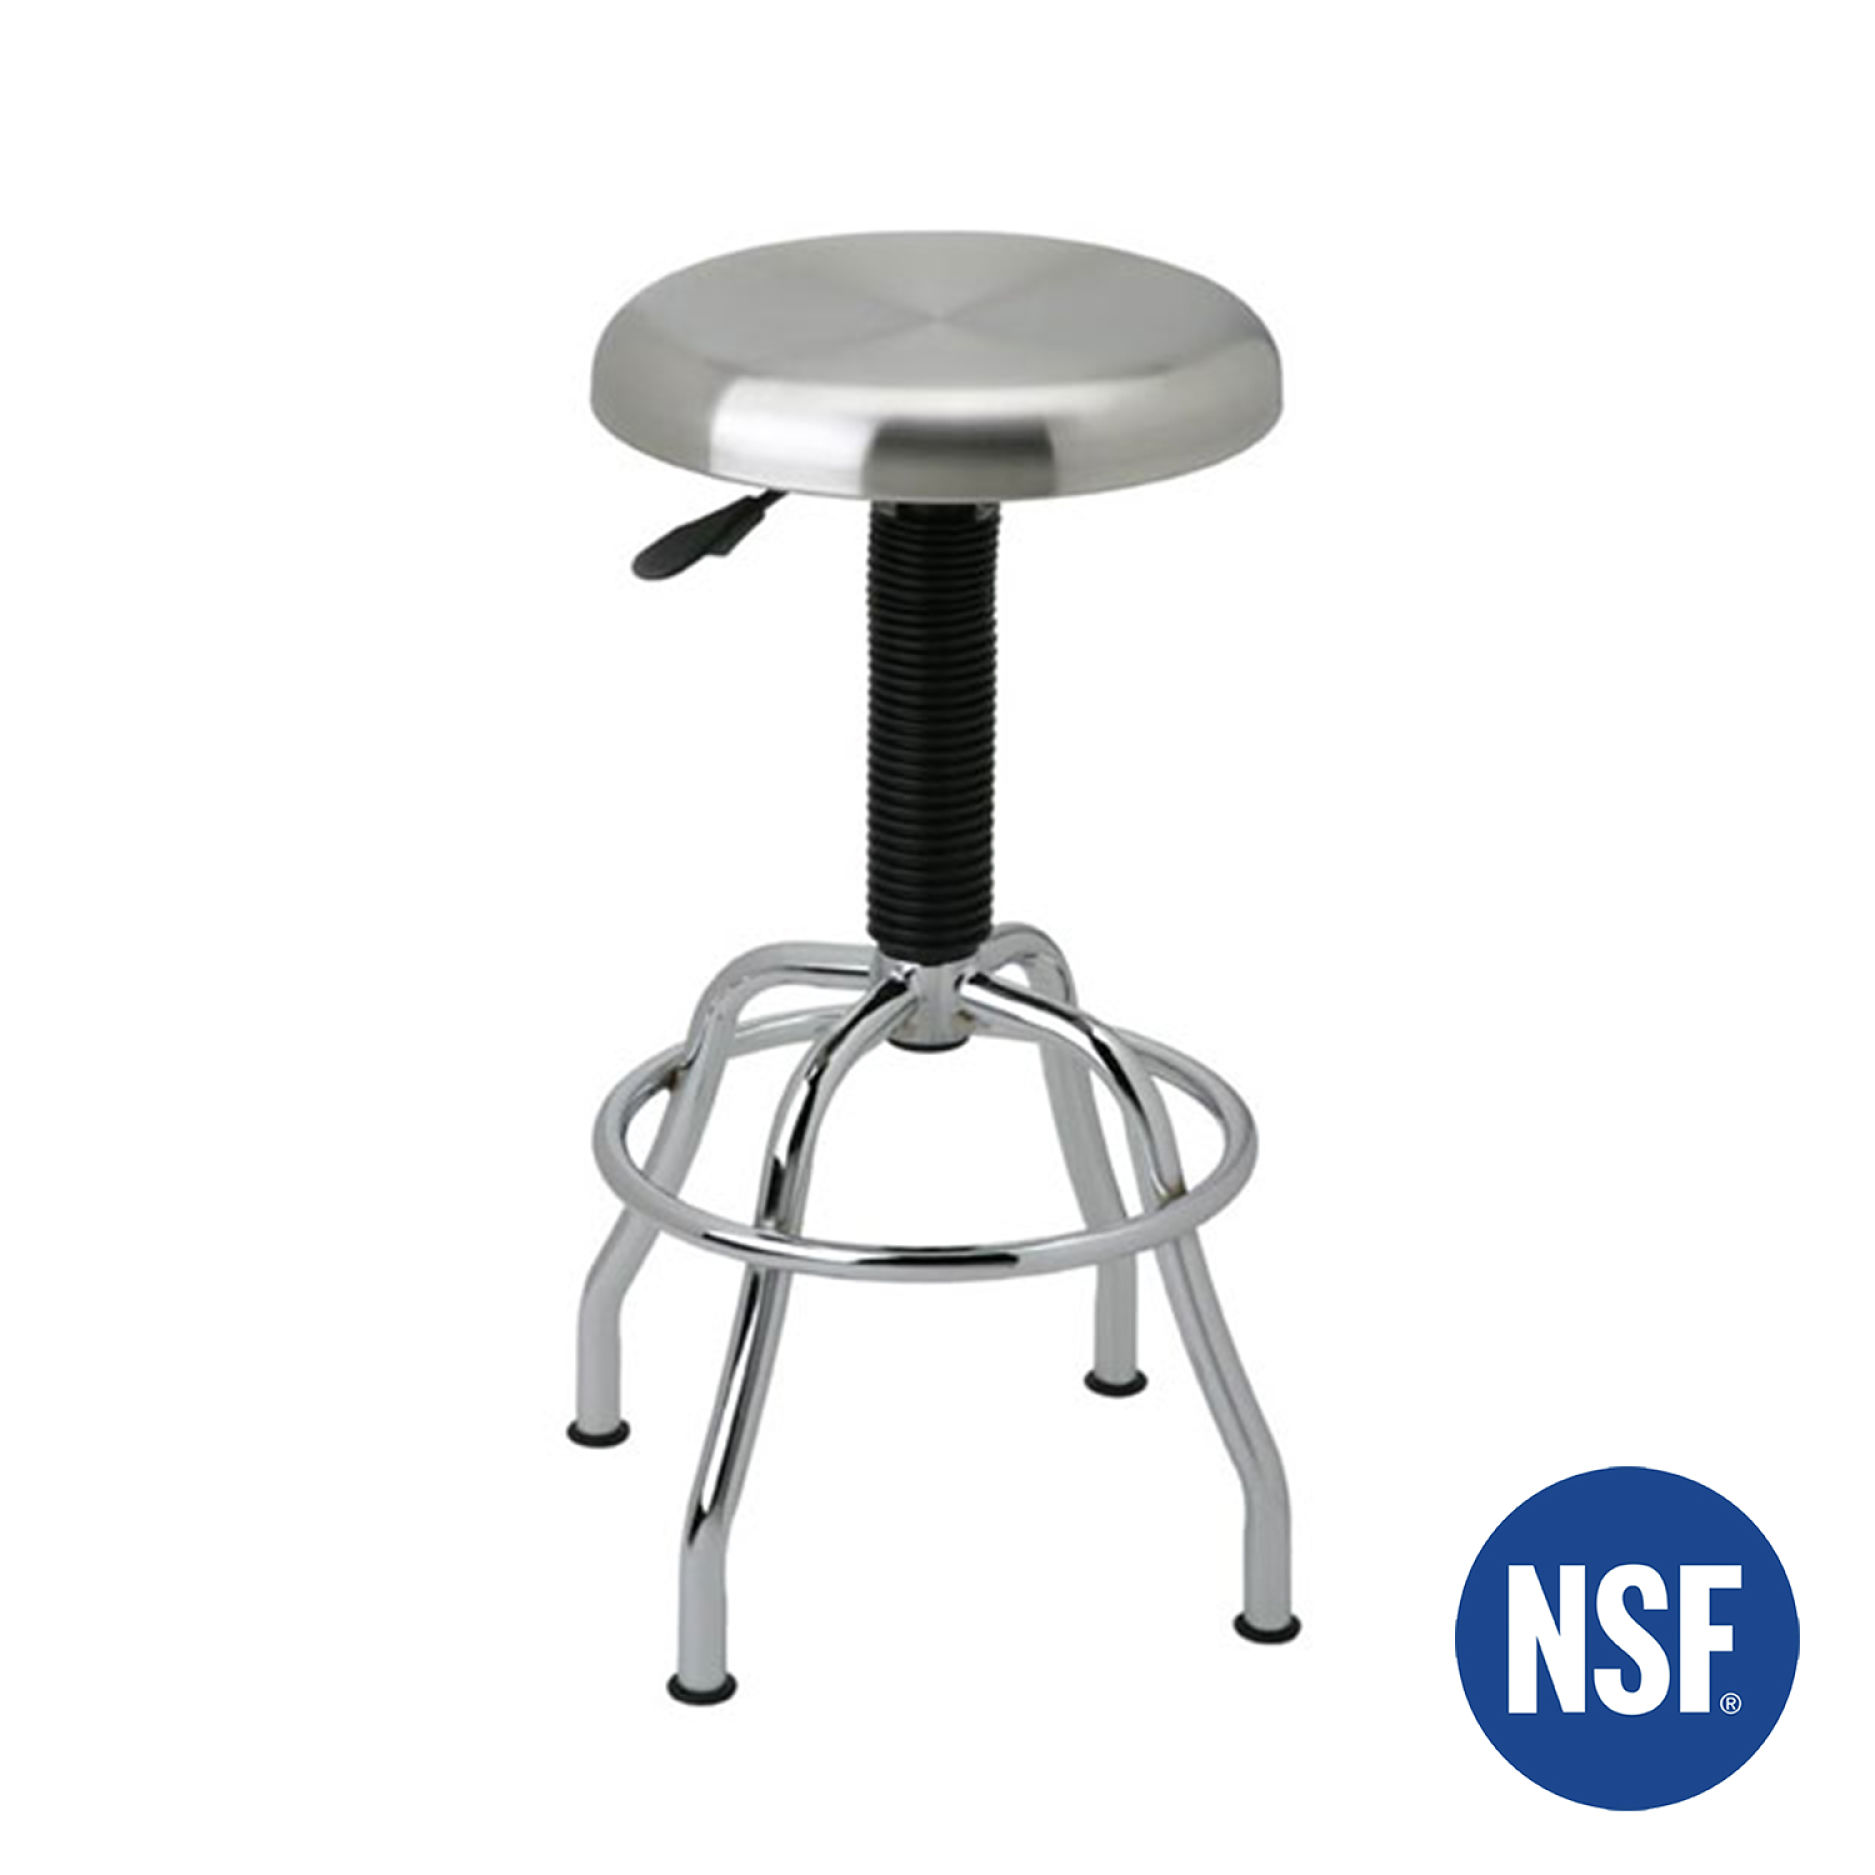 Work stool with ergonomic properties